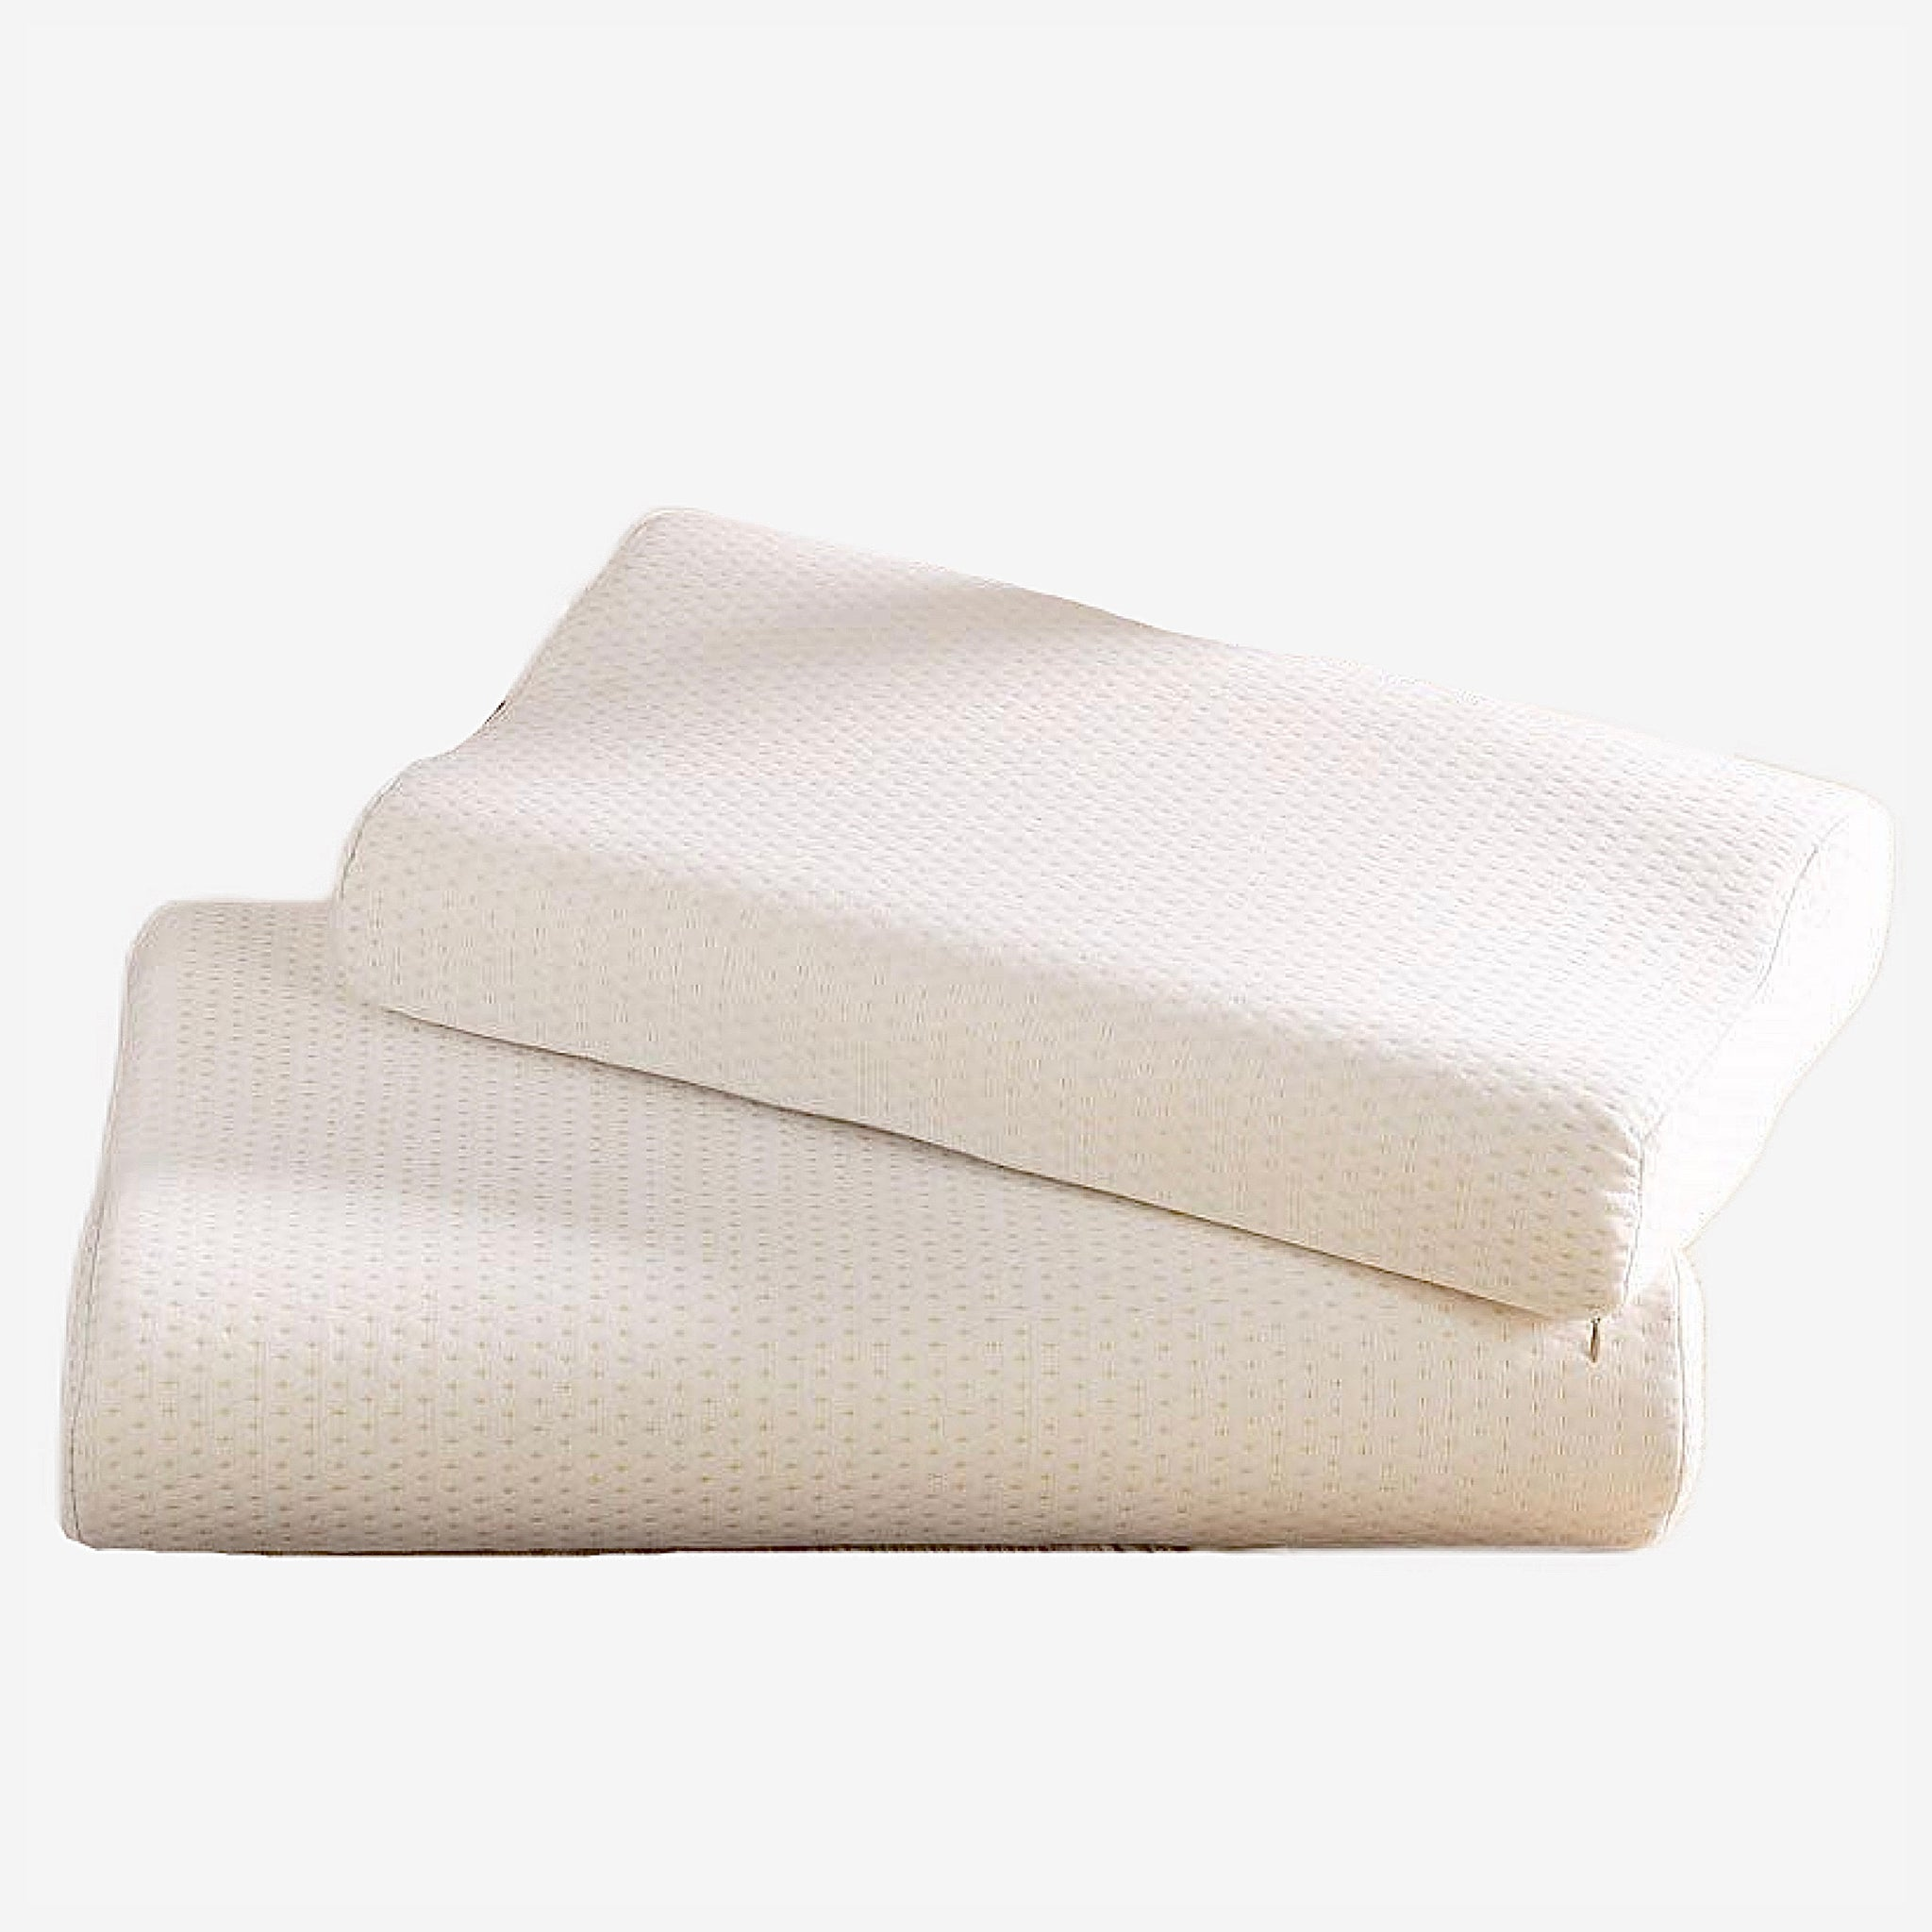 Memory Foam Pillow 60x40cm  Slow Rebound Cervical Orthopedic Neck Healthcare Bedding Pillows for Sleeping Trend